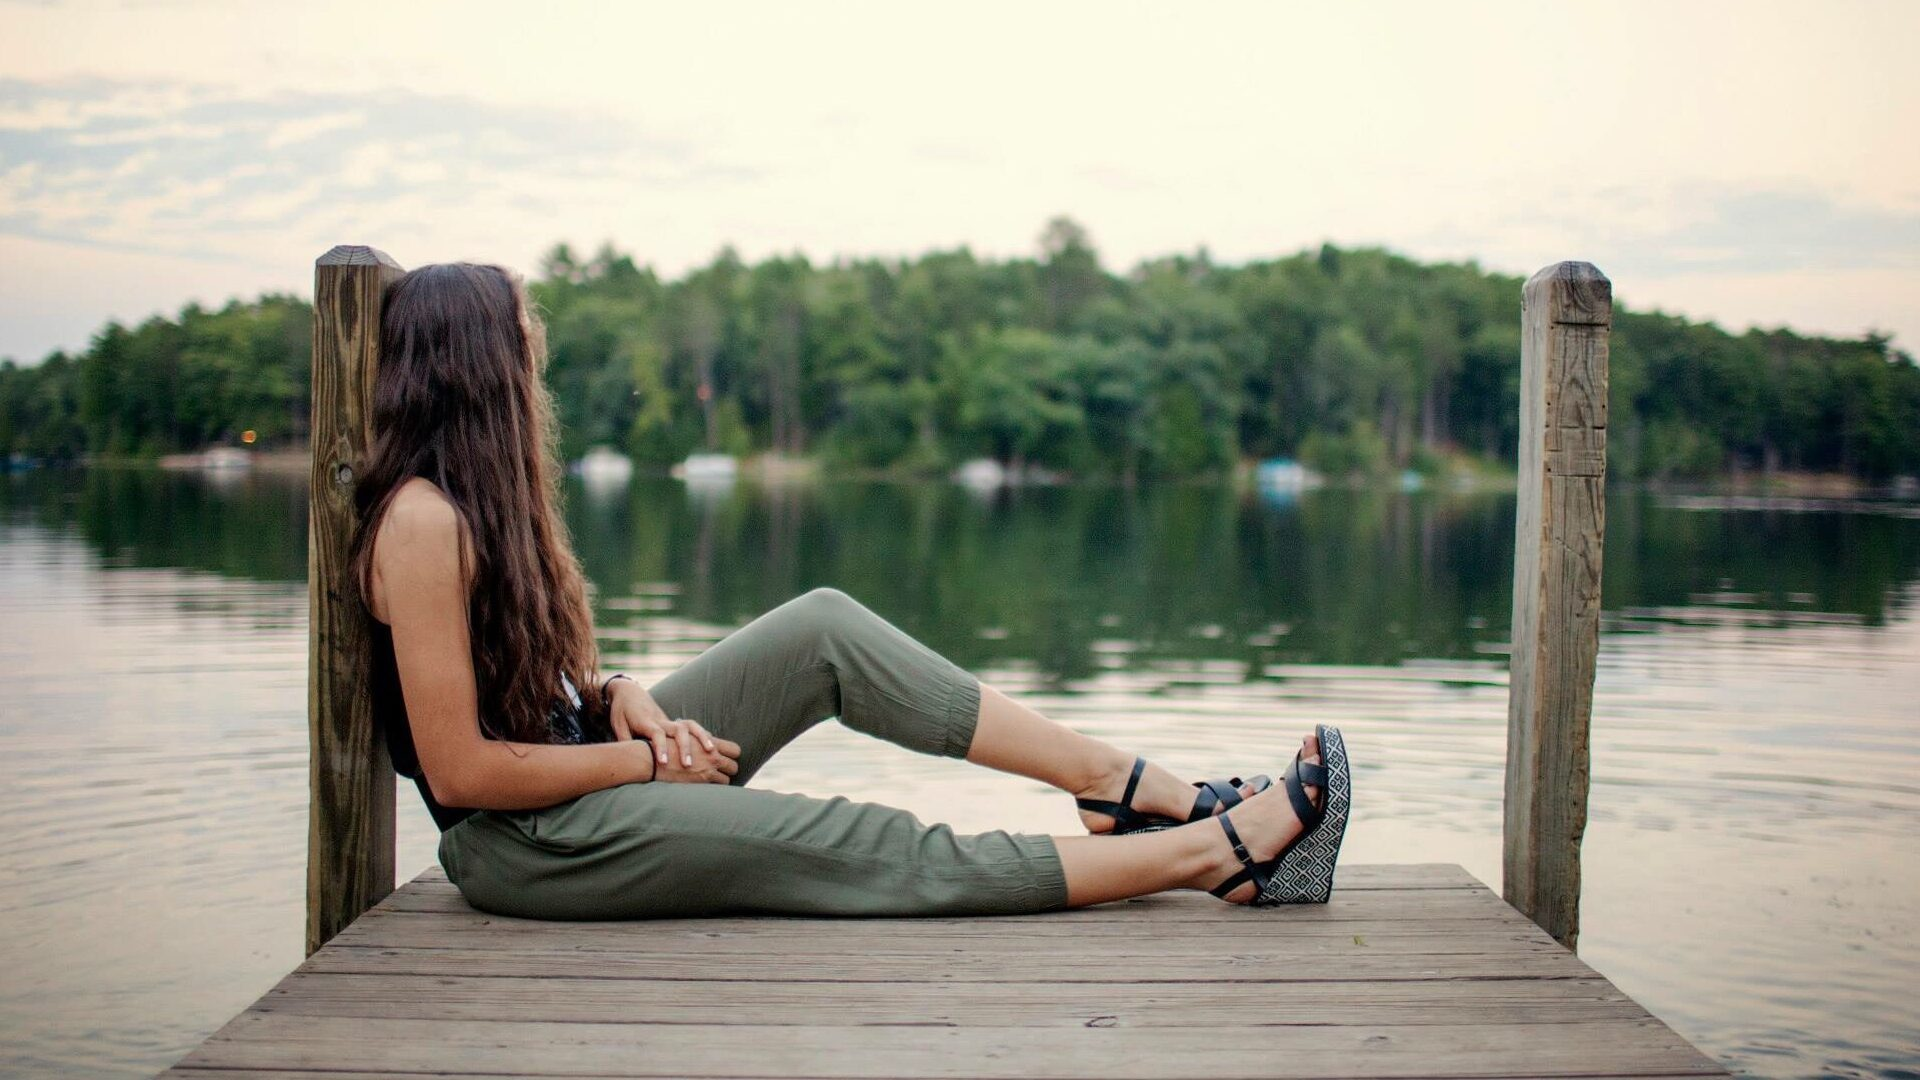 Top 5 Tips for Staying Comfortable and Fashionable on Vacations